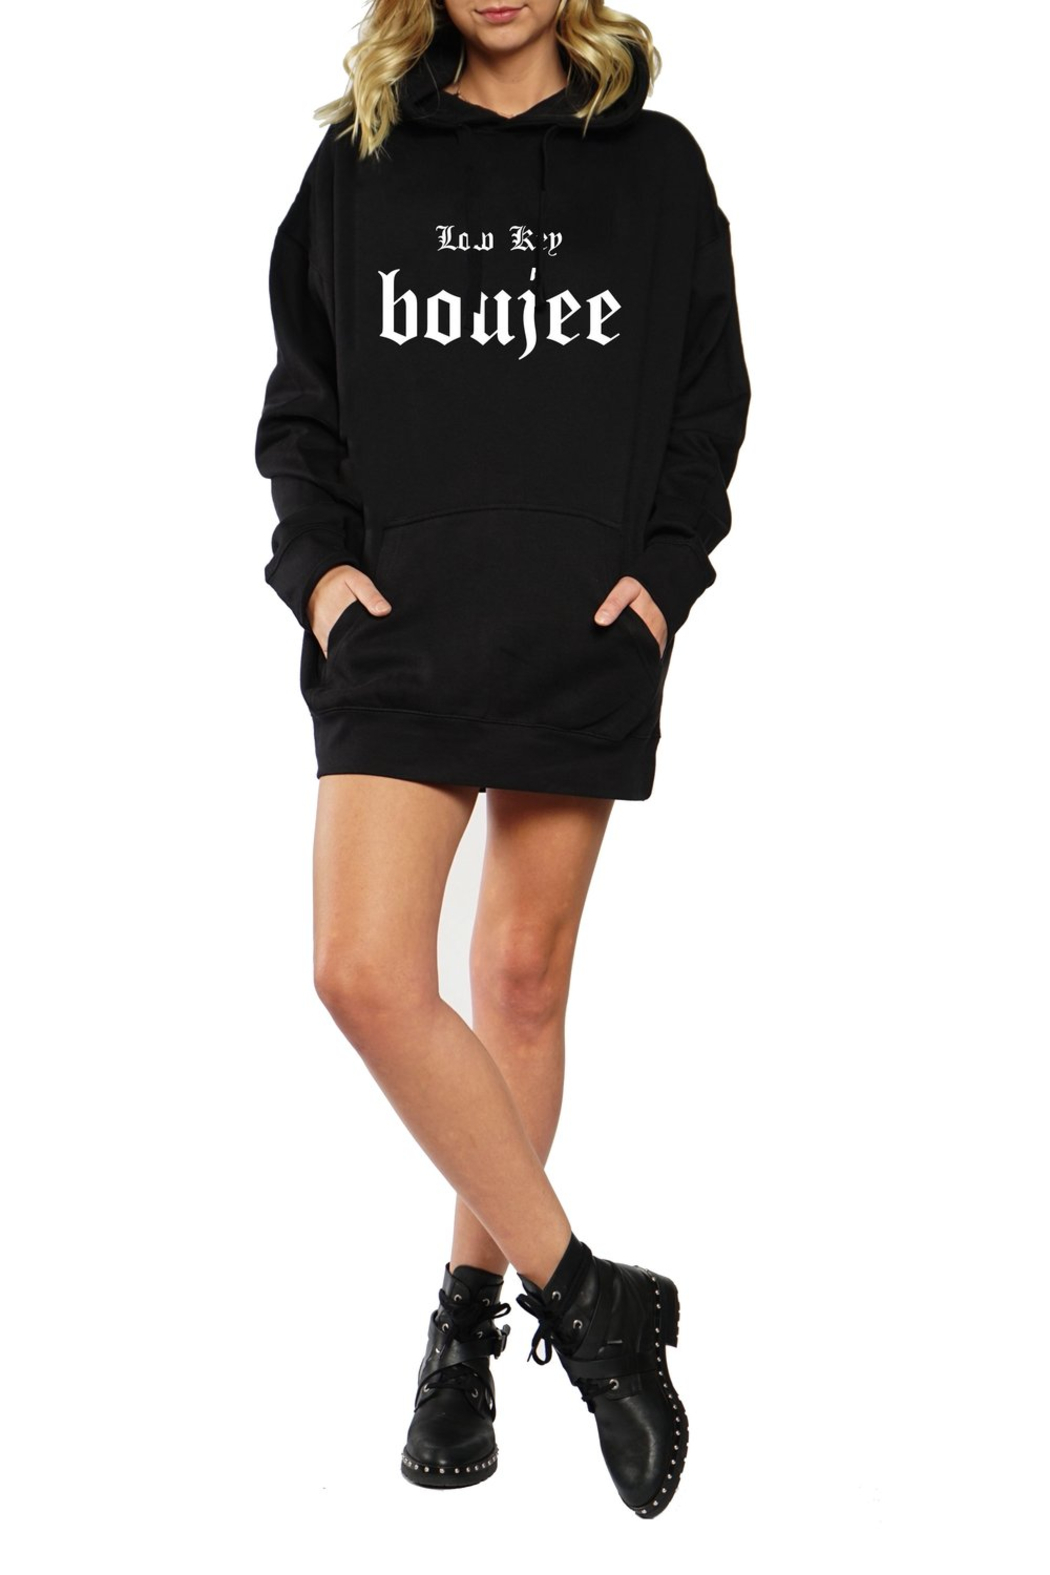 LA Trading Co. Low Key Boujee Overszed Hoody - Front Cropped Image